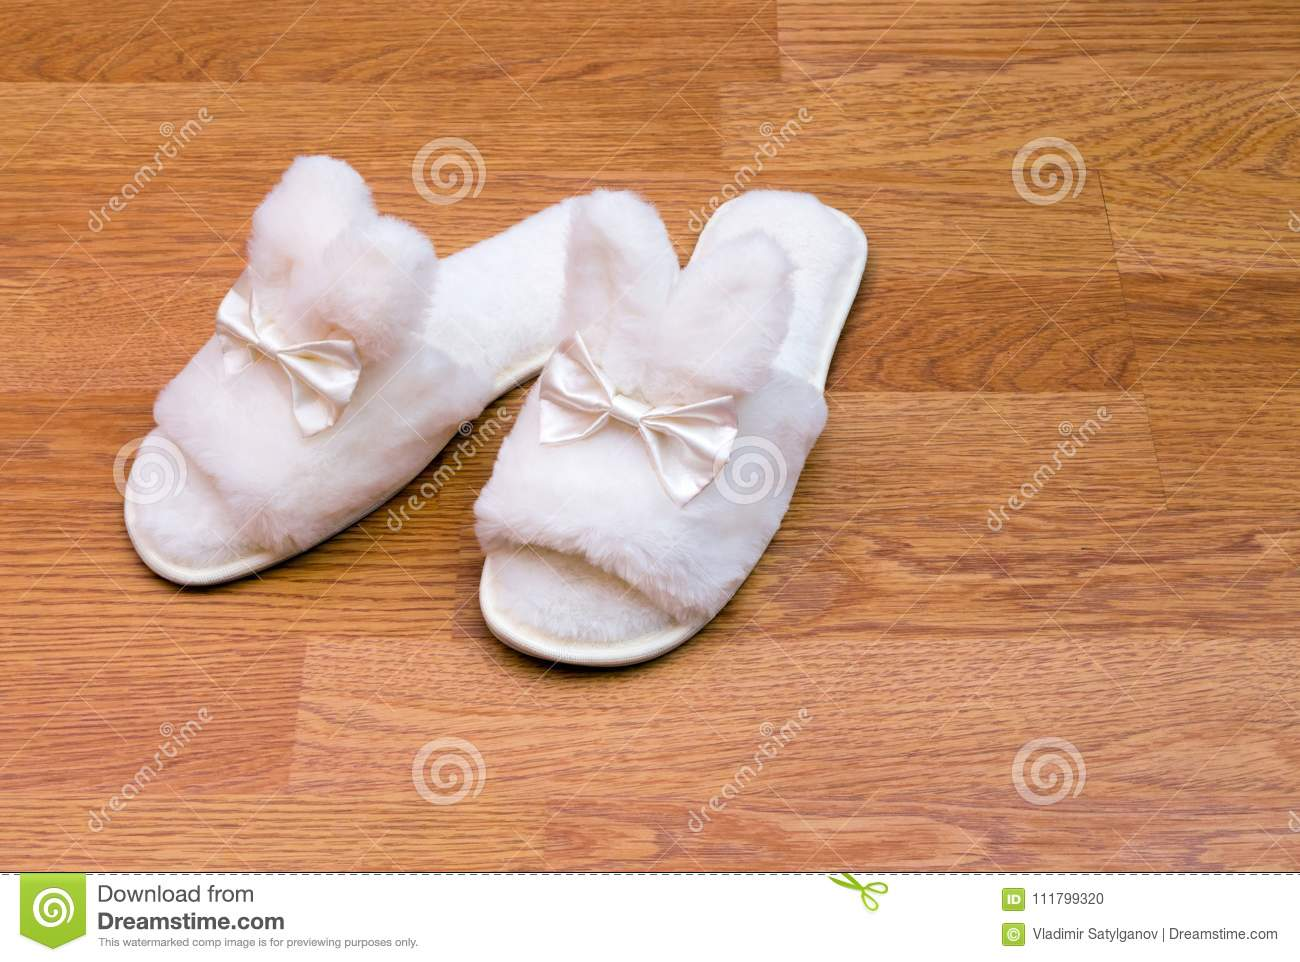 Baby Hotel Slippers White Fluffy Slippers Stock Photo Image Of Hotel Healthy